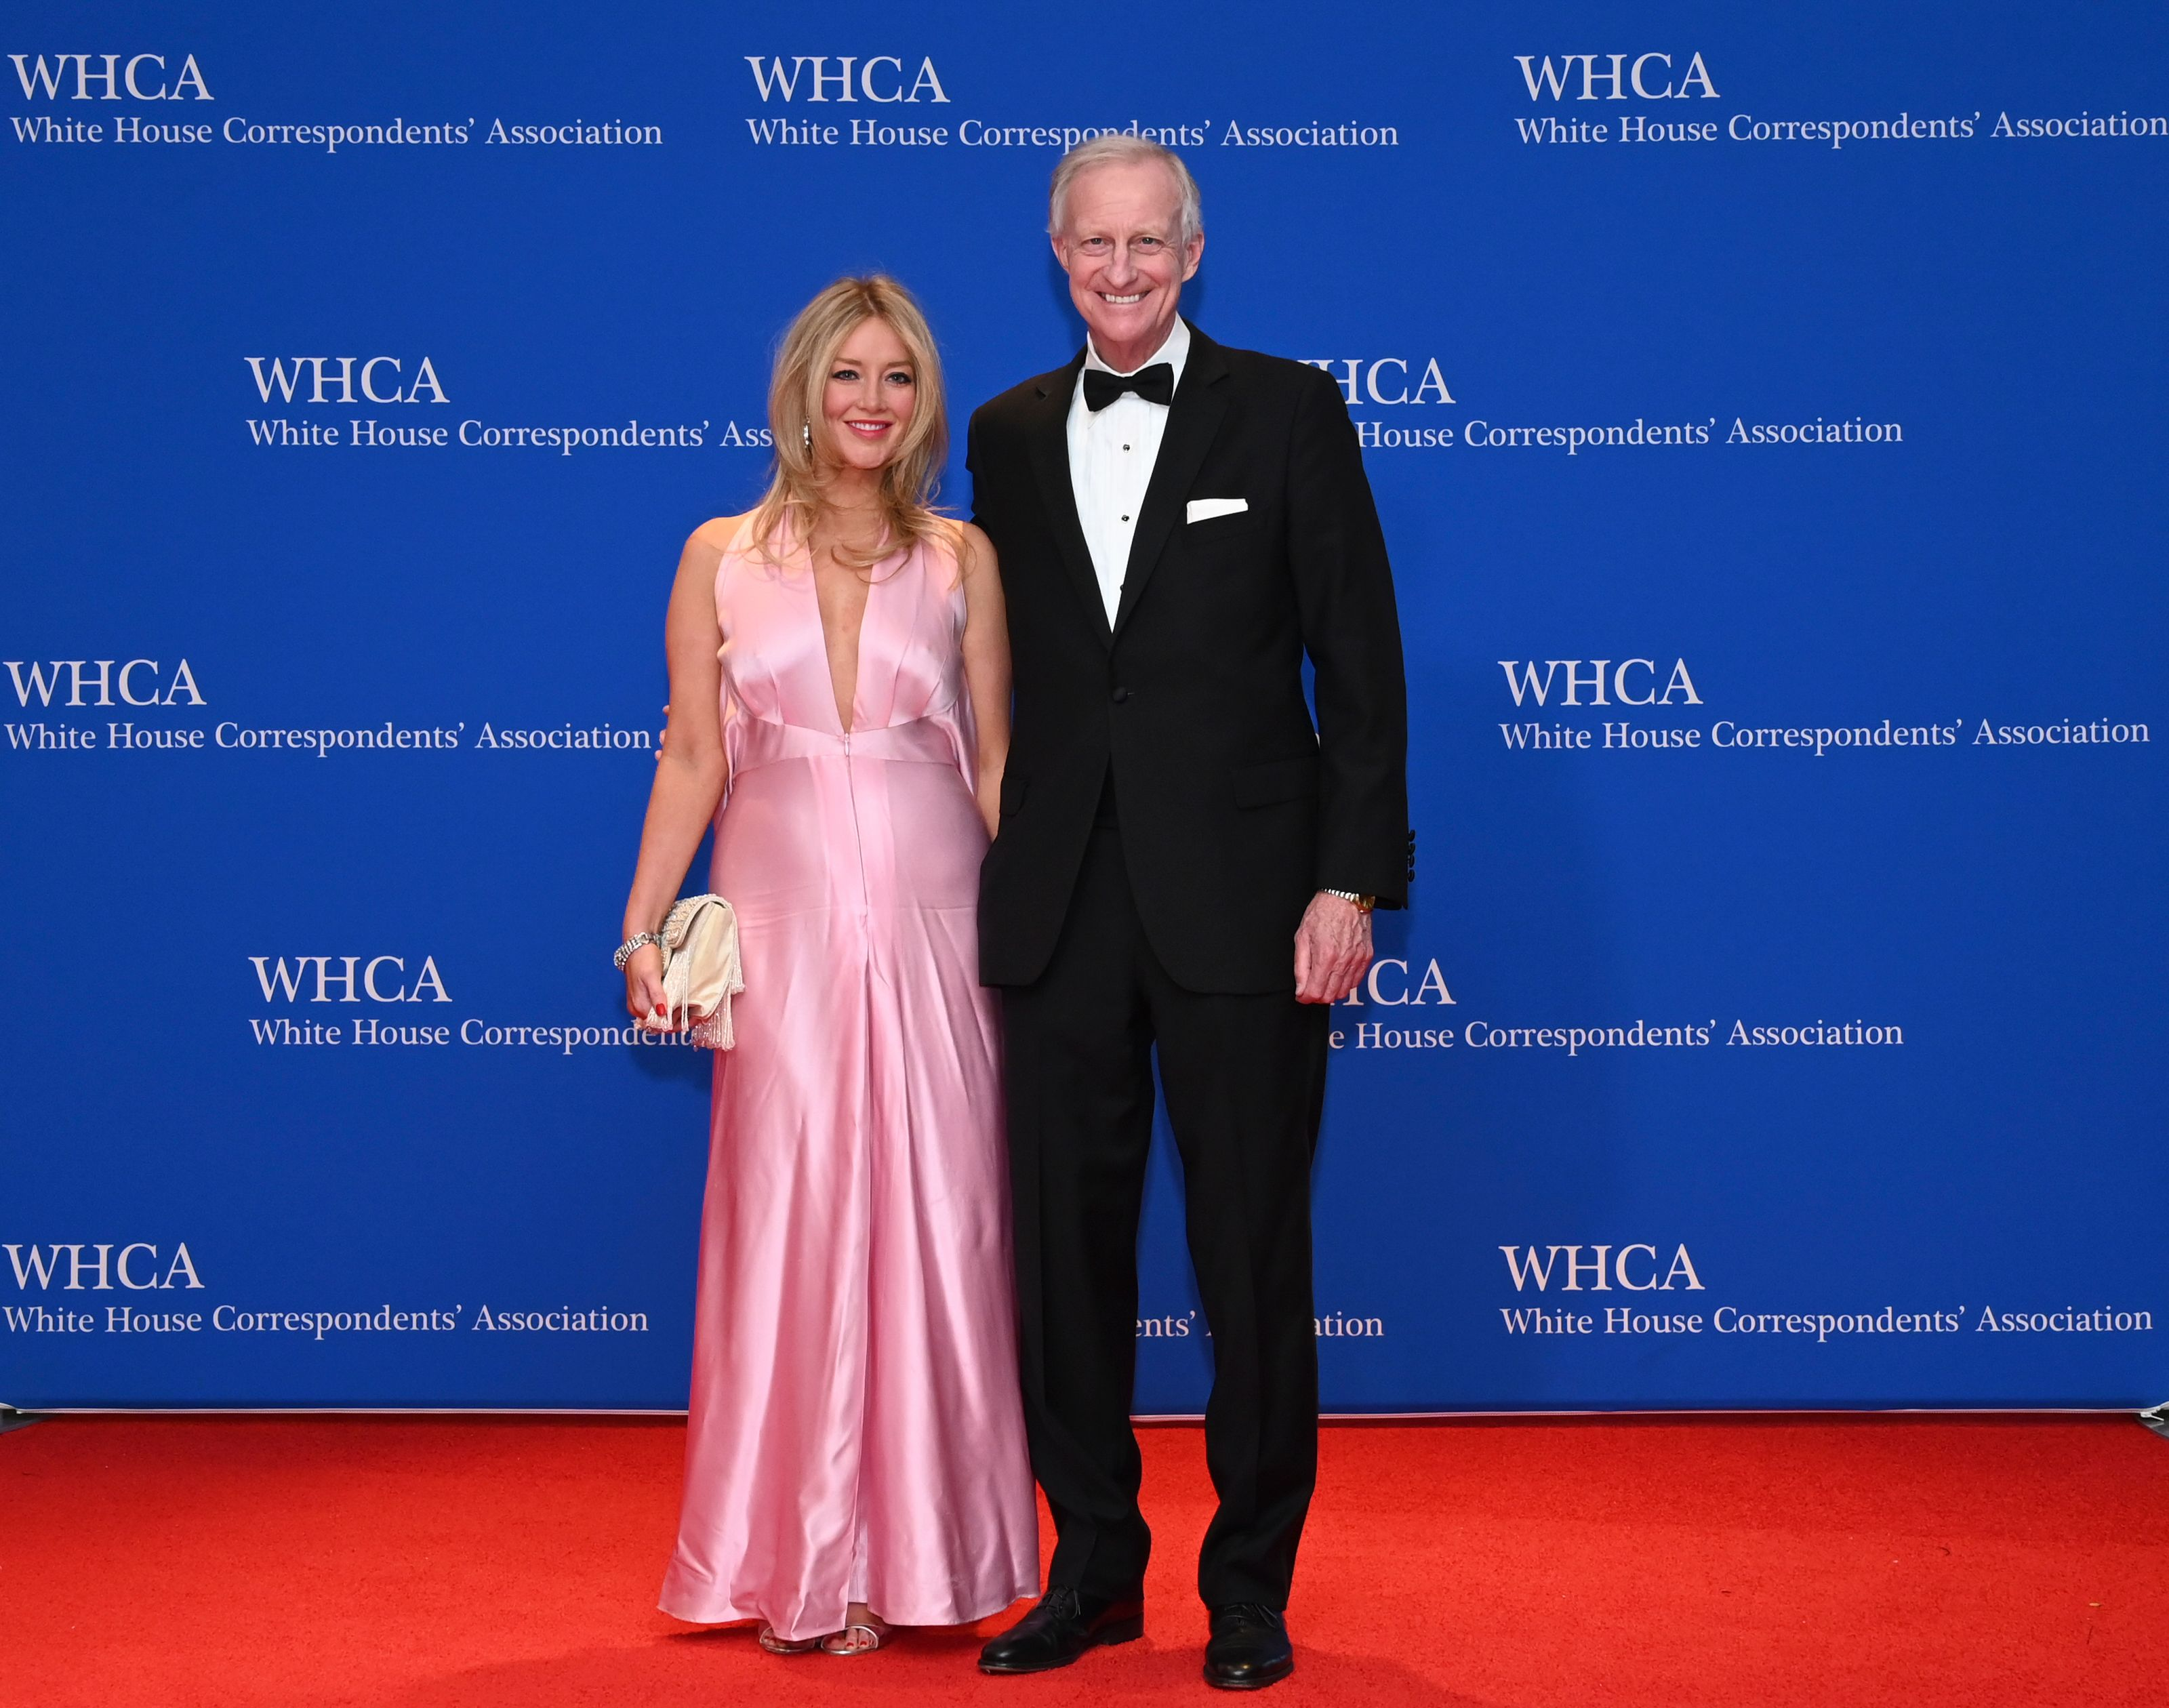 DC council member from Ward 2 Jack Evans (R) arrives on the red carpet during the White House Correspondents' Dinner in Washington, DC on April 27, 2019. (Photo by ANDREW CABALLERO-REYNOLDS / AFP via Getty Images)